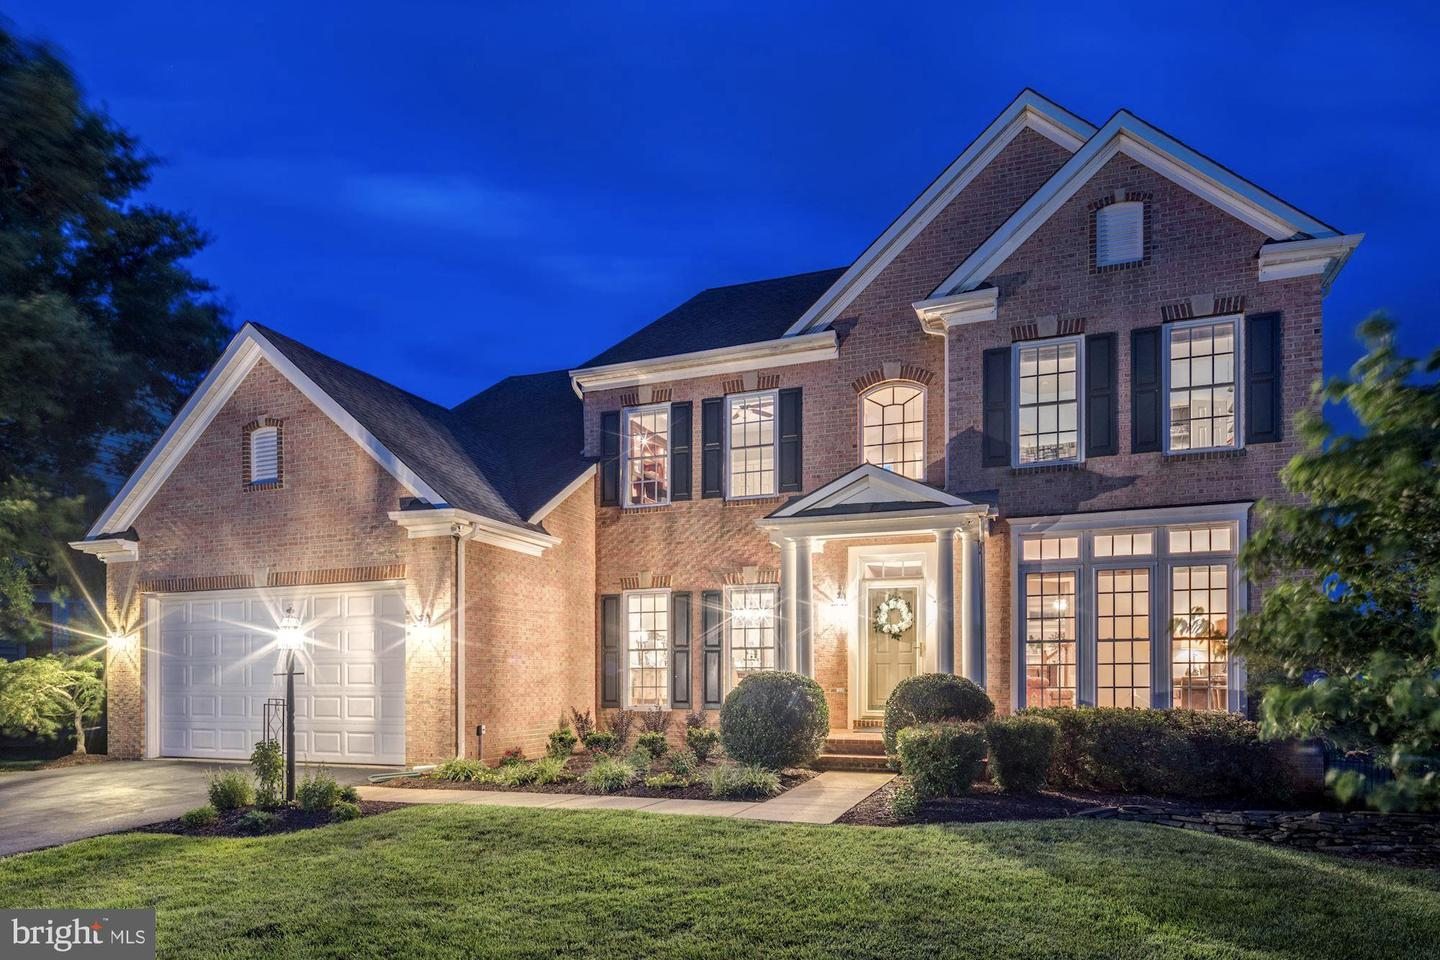 Single Family for Sale at 14224 Snickersville Dr Gainesville, Virginia 20155 United States